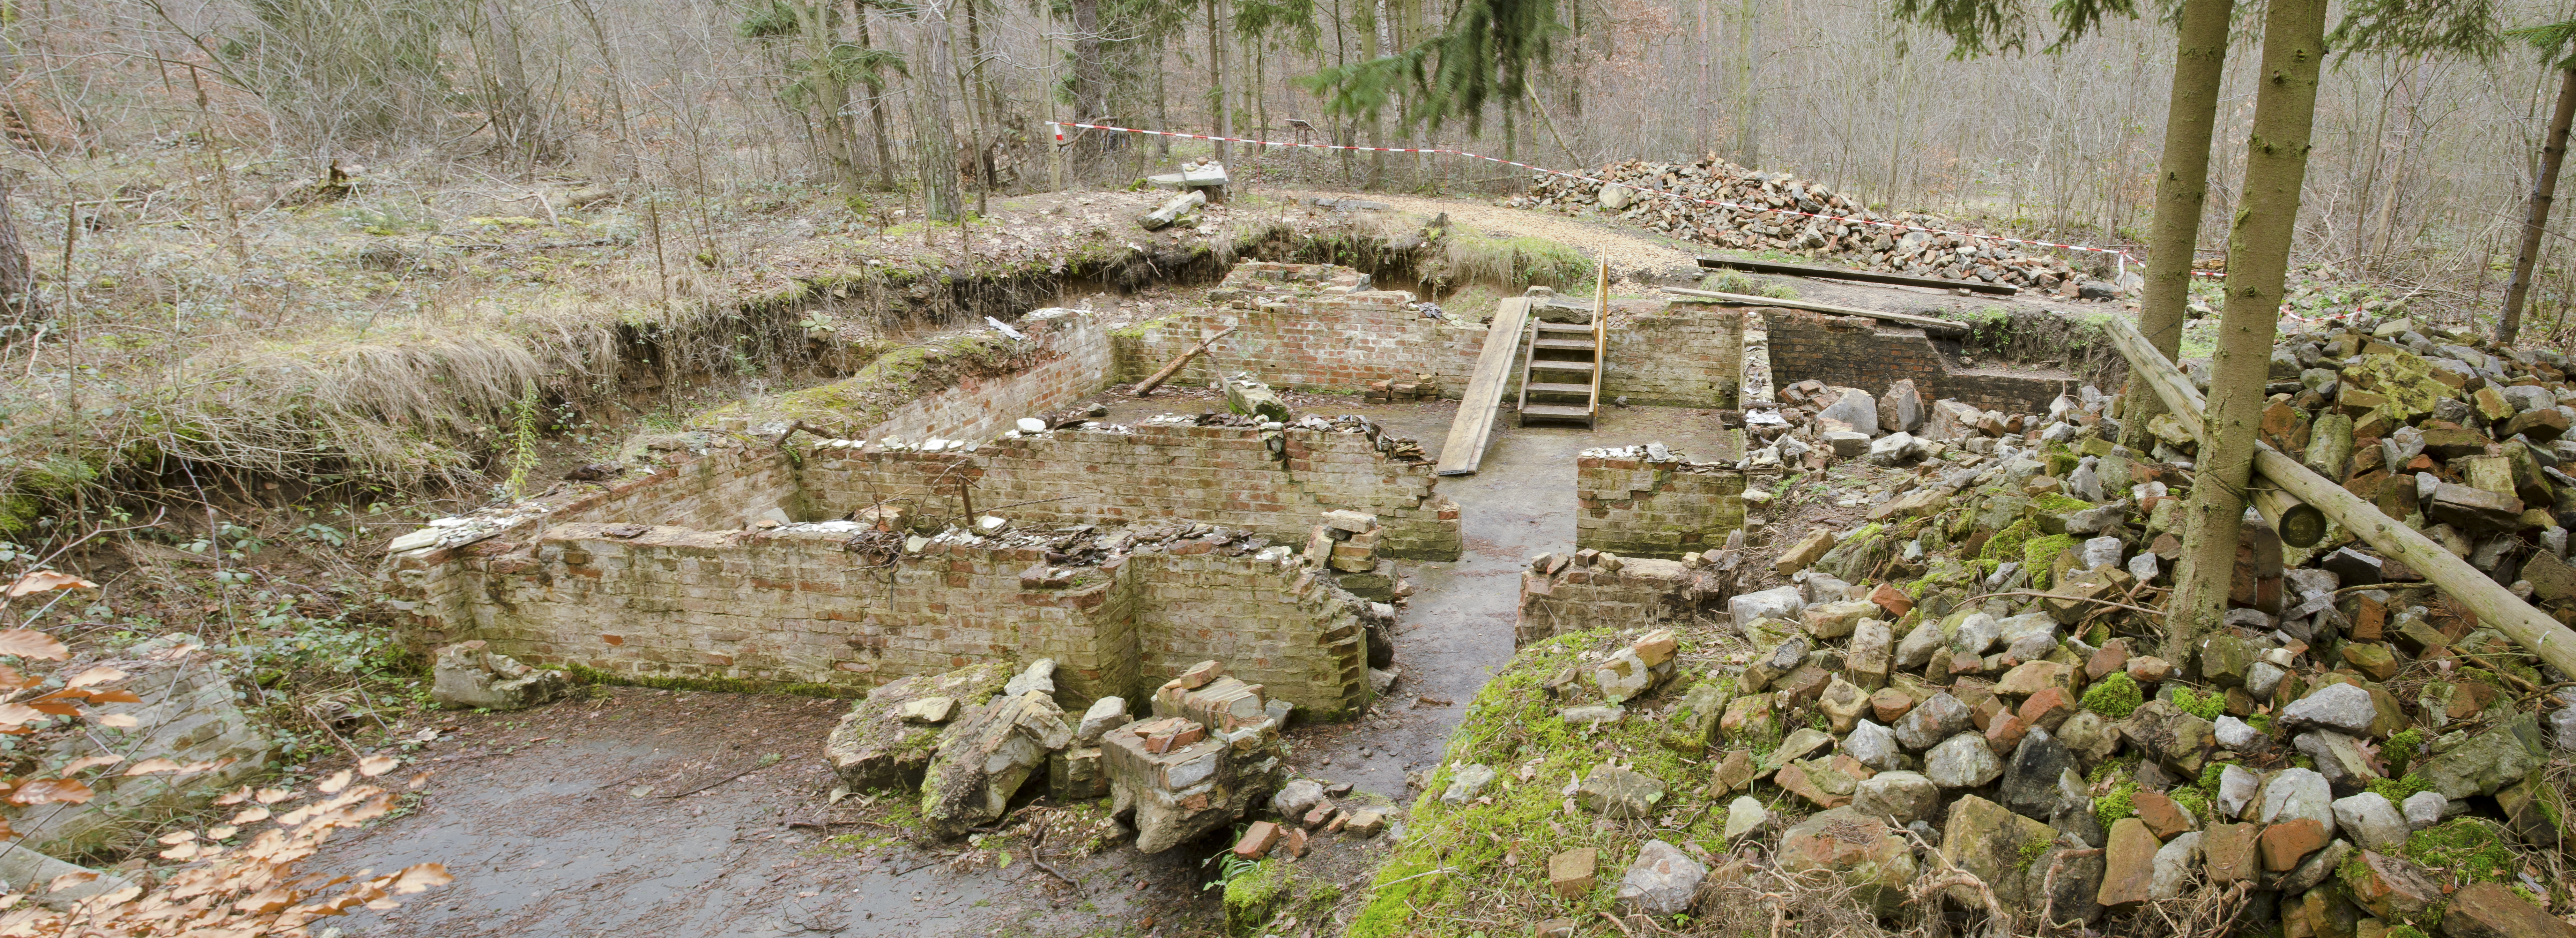 File:Former cellar of kitchen barrack - Nazi labour camp Walldorf ...